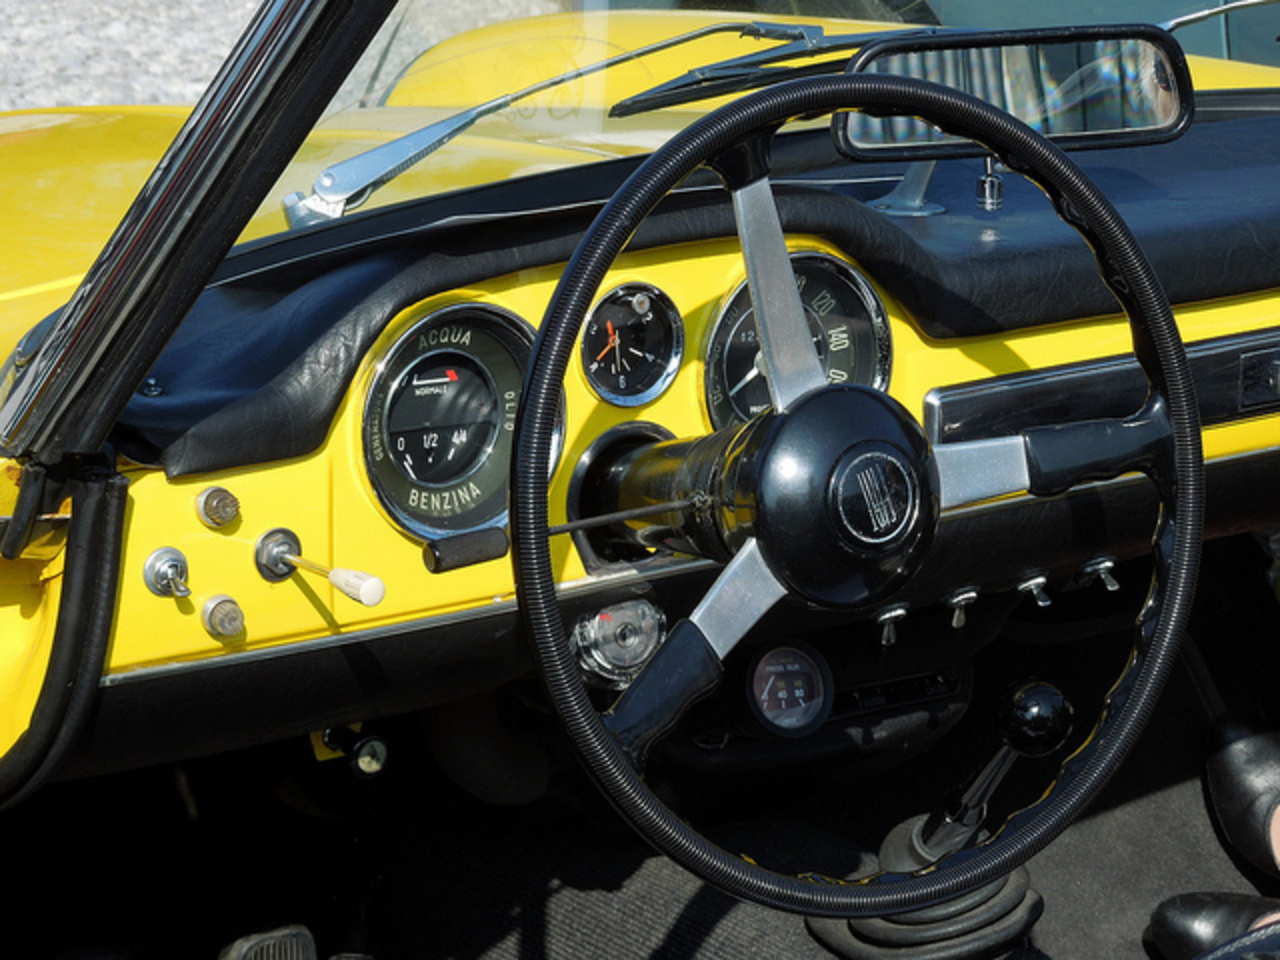 FIAT 1500 Spider (Volant et instruments)) | Flickr - Photo Sharing!